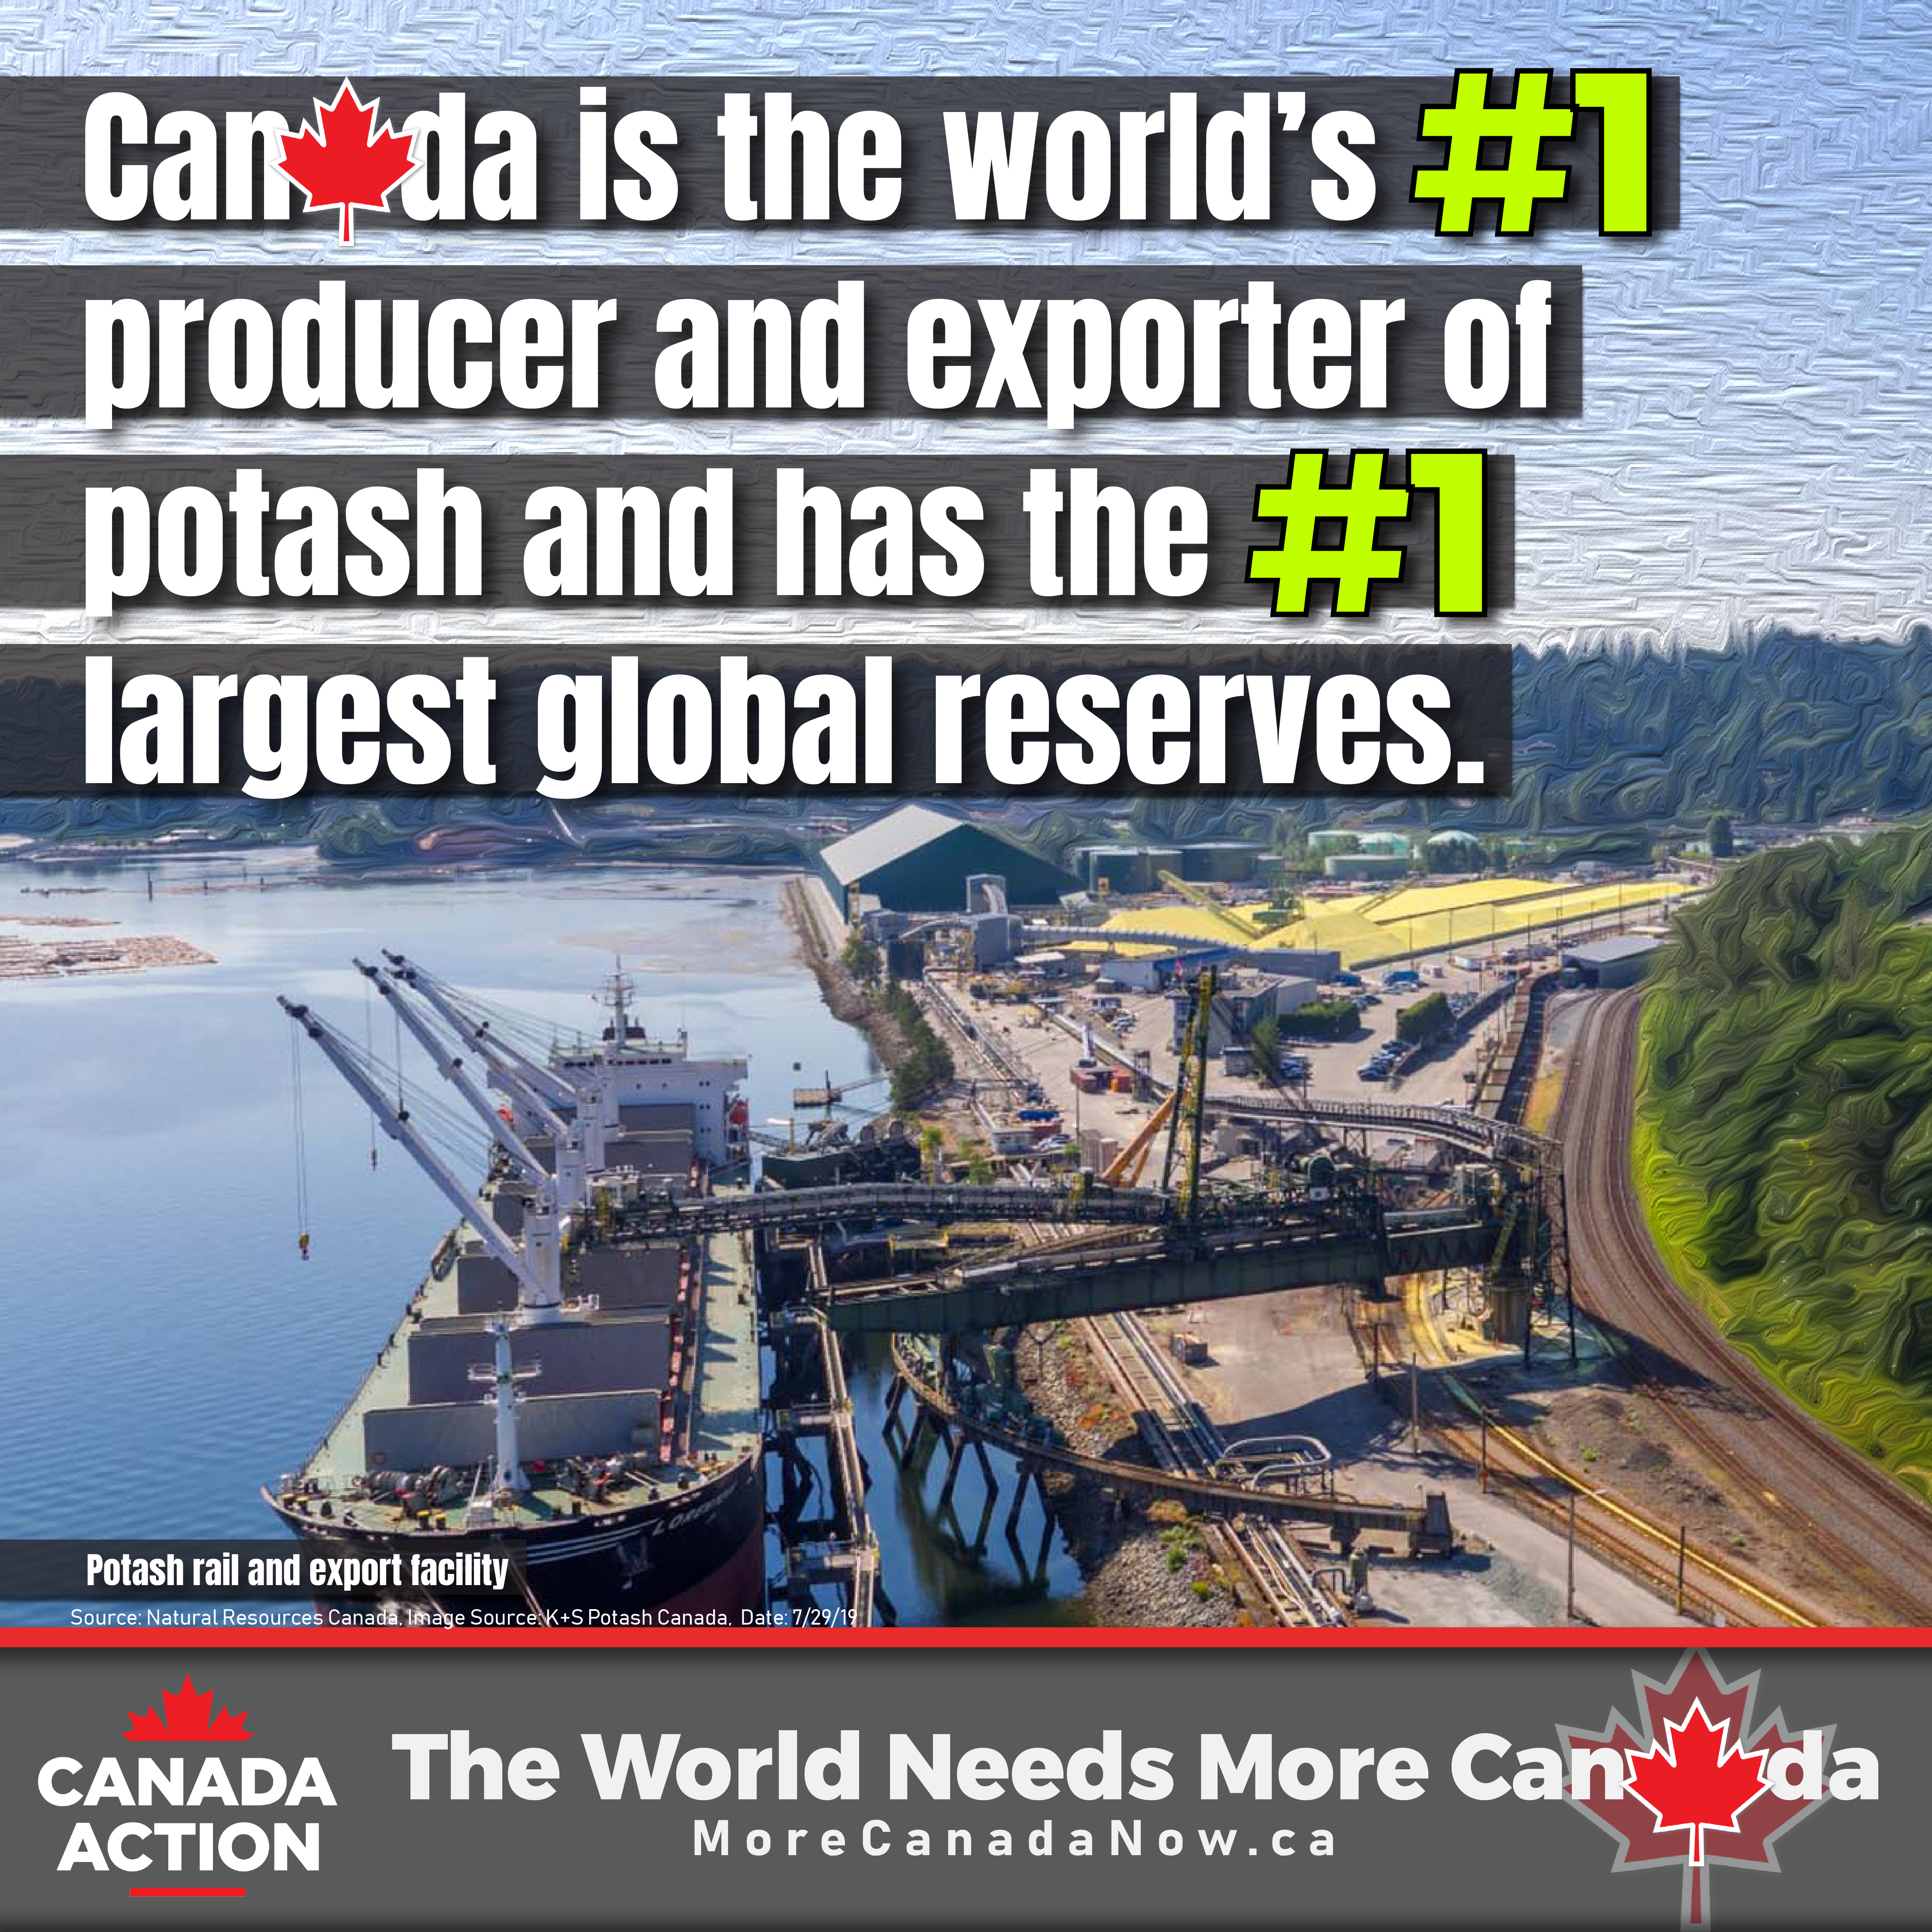 Canada is the world's top potash producer and exporter